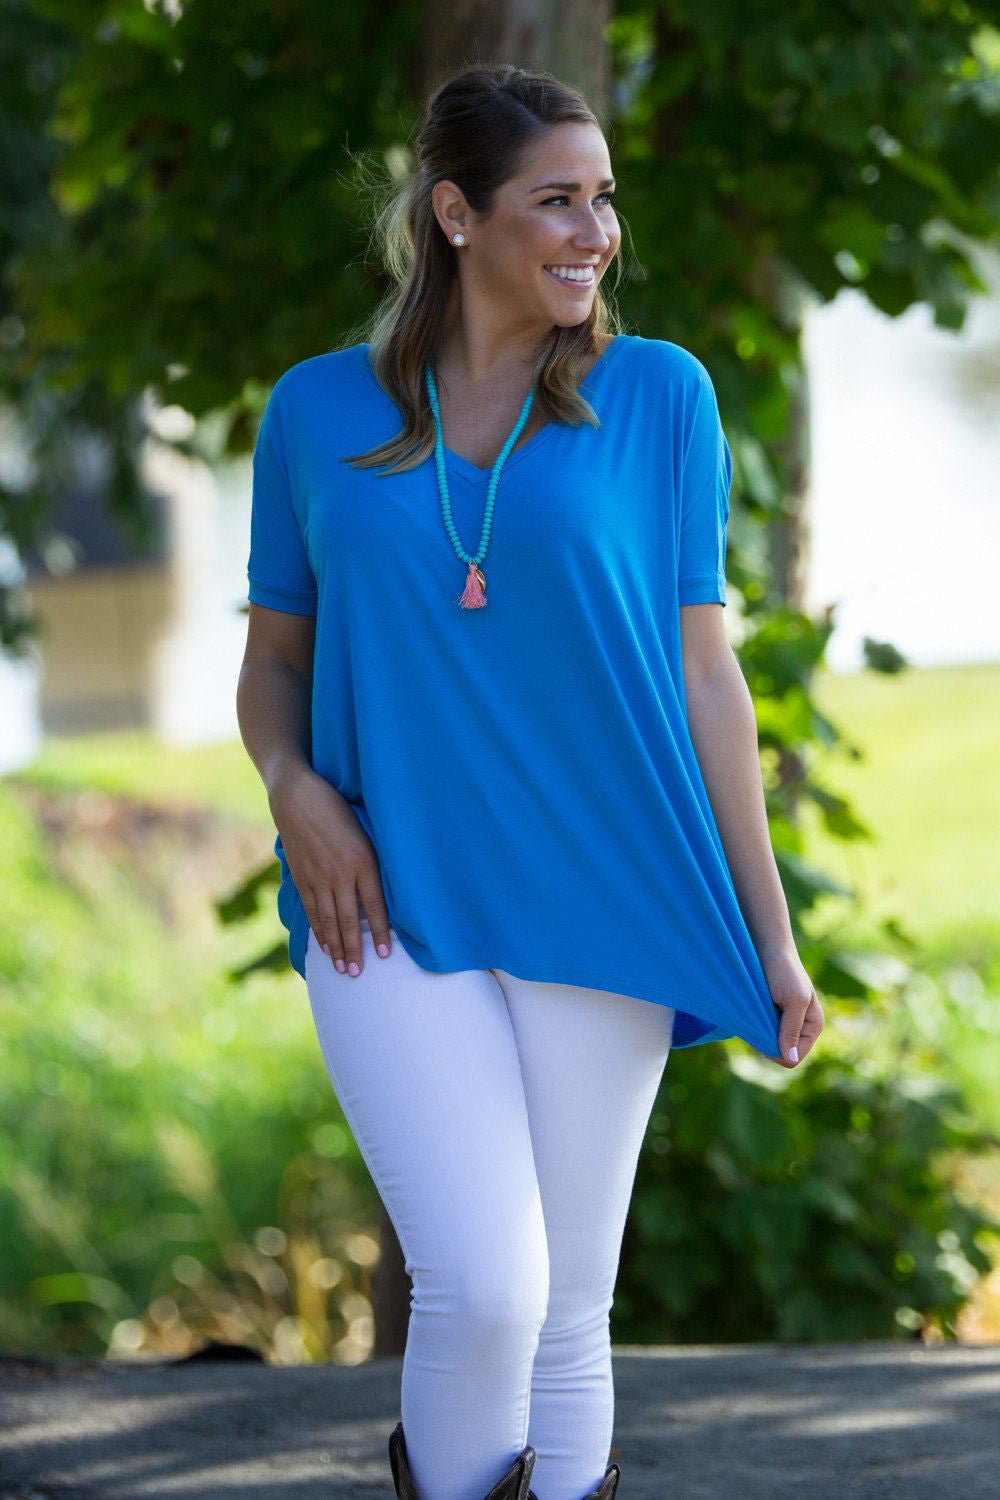 Short Sleeve V-Neck Piko Top - Dazzling Blue - Piko Clothing - 1